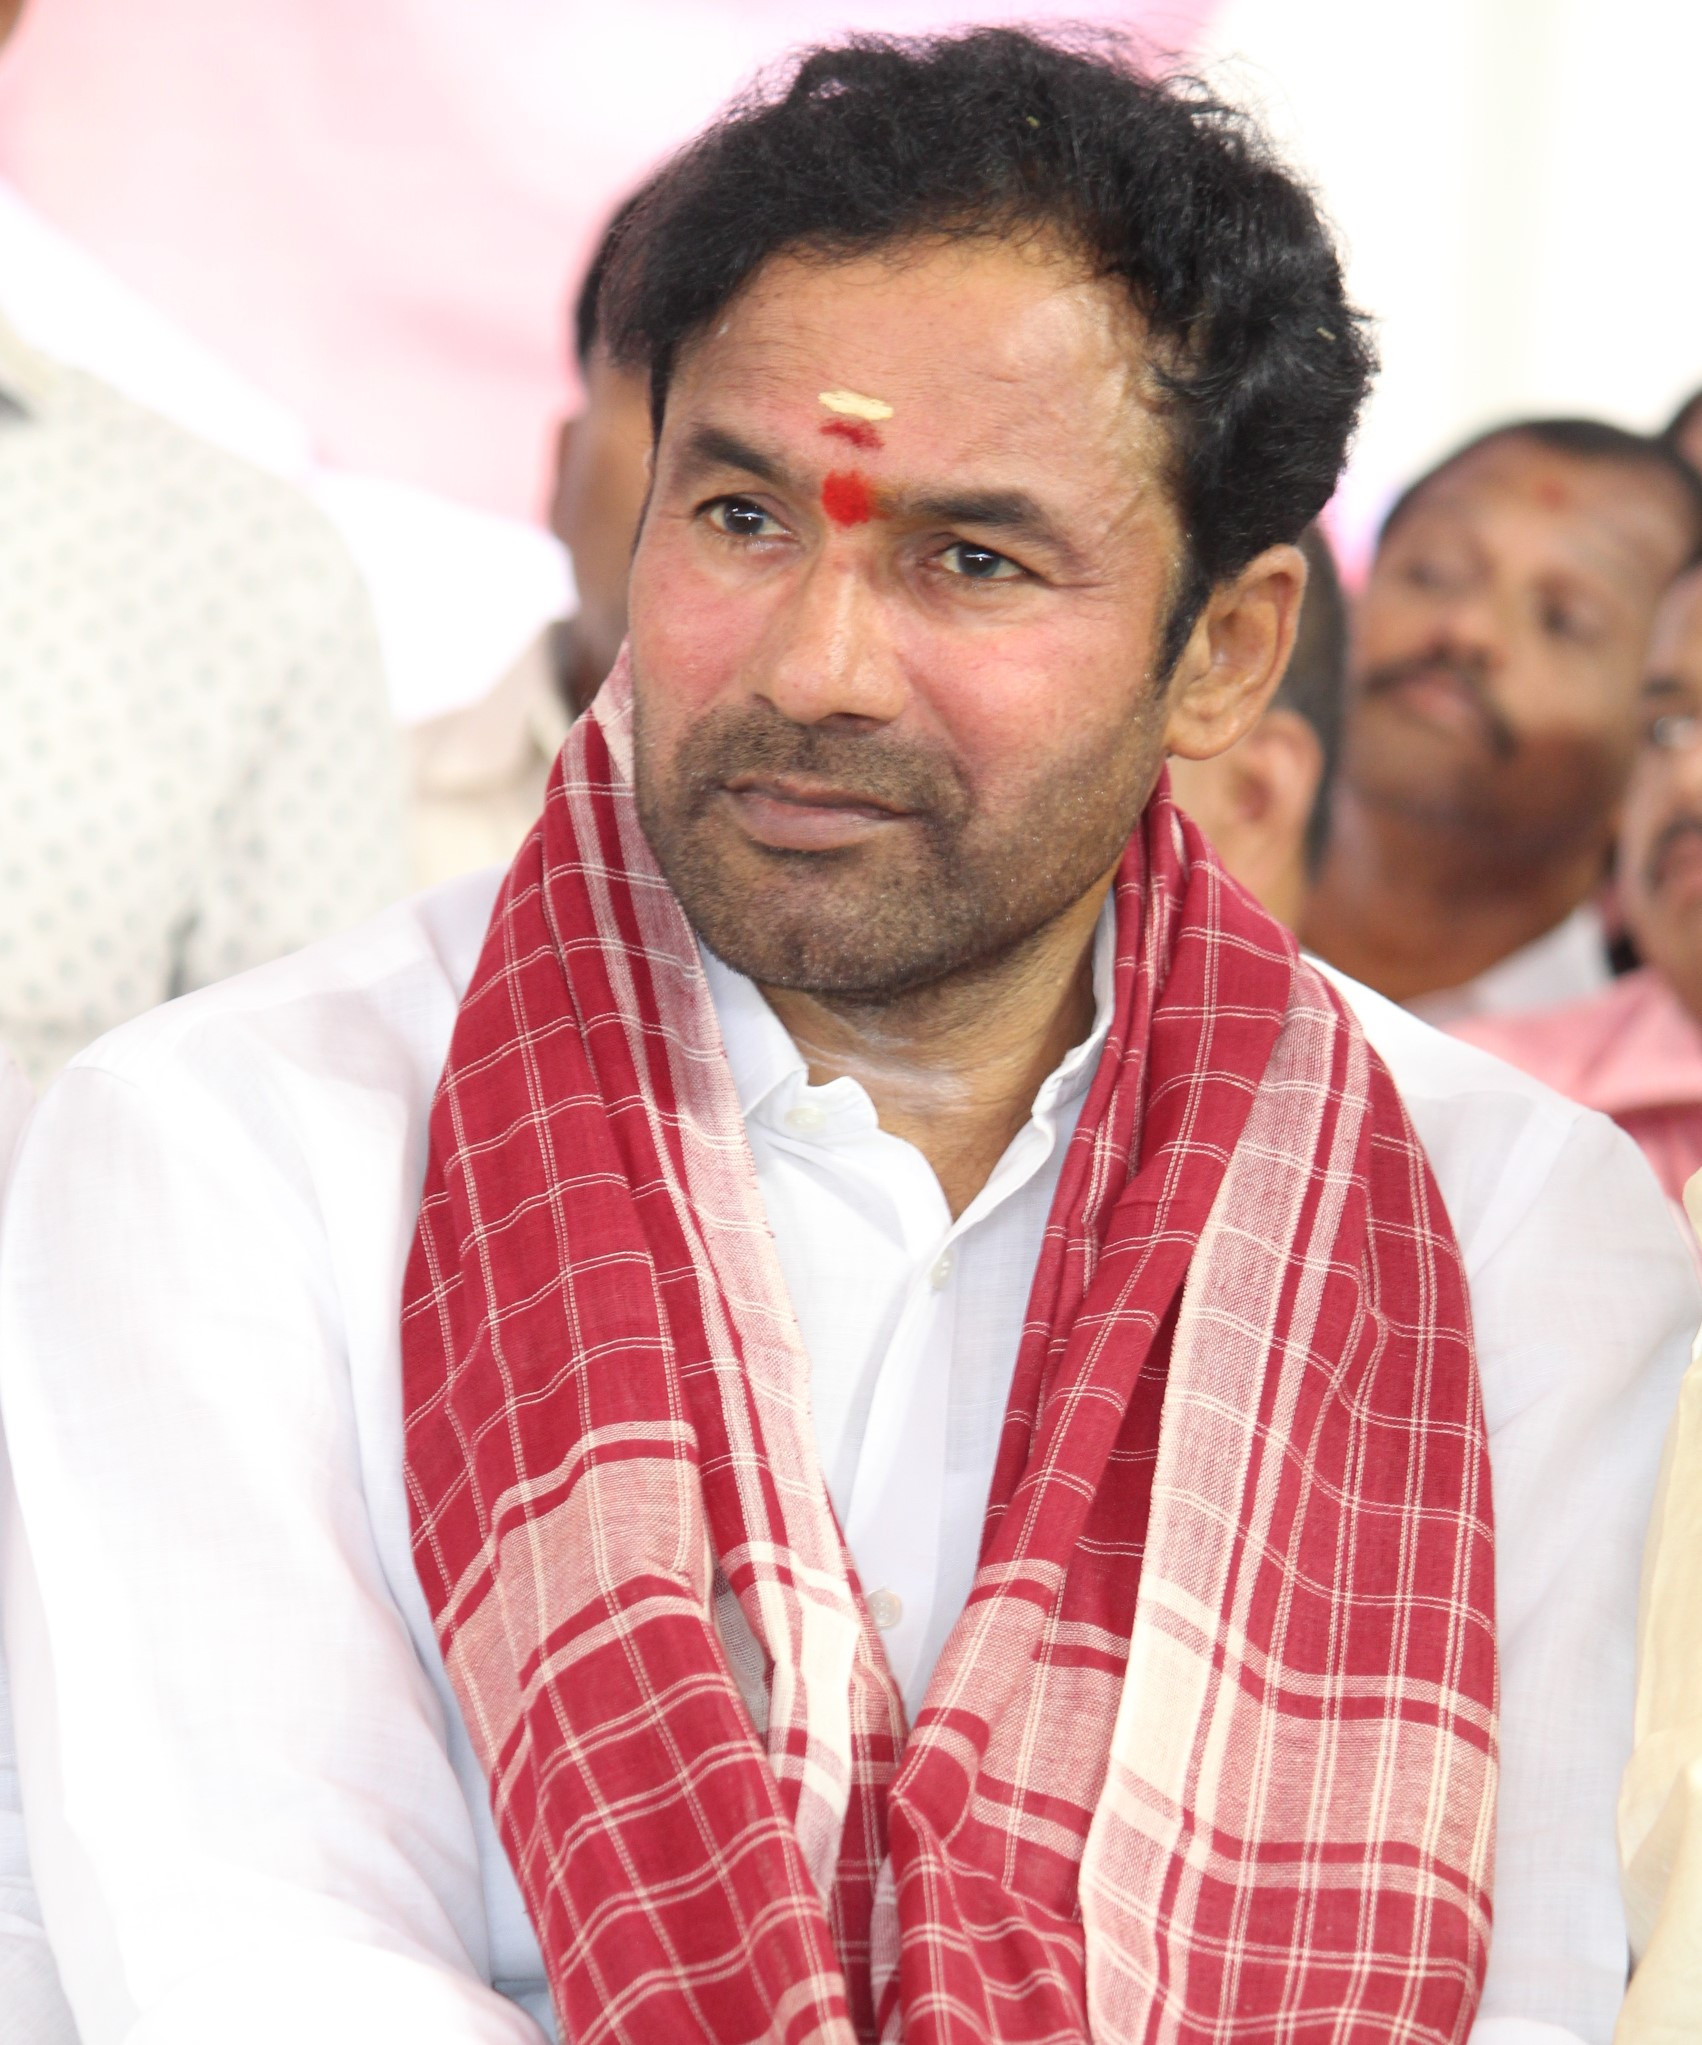 Union minister of state for home G. Kishan Reddy said the security situation in the northeastern states had improved substantially since 2014 and there had been a 78 per cent decline in casualties in the security forces.